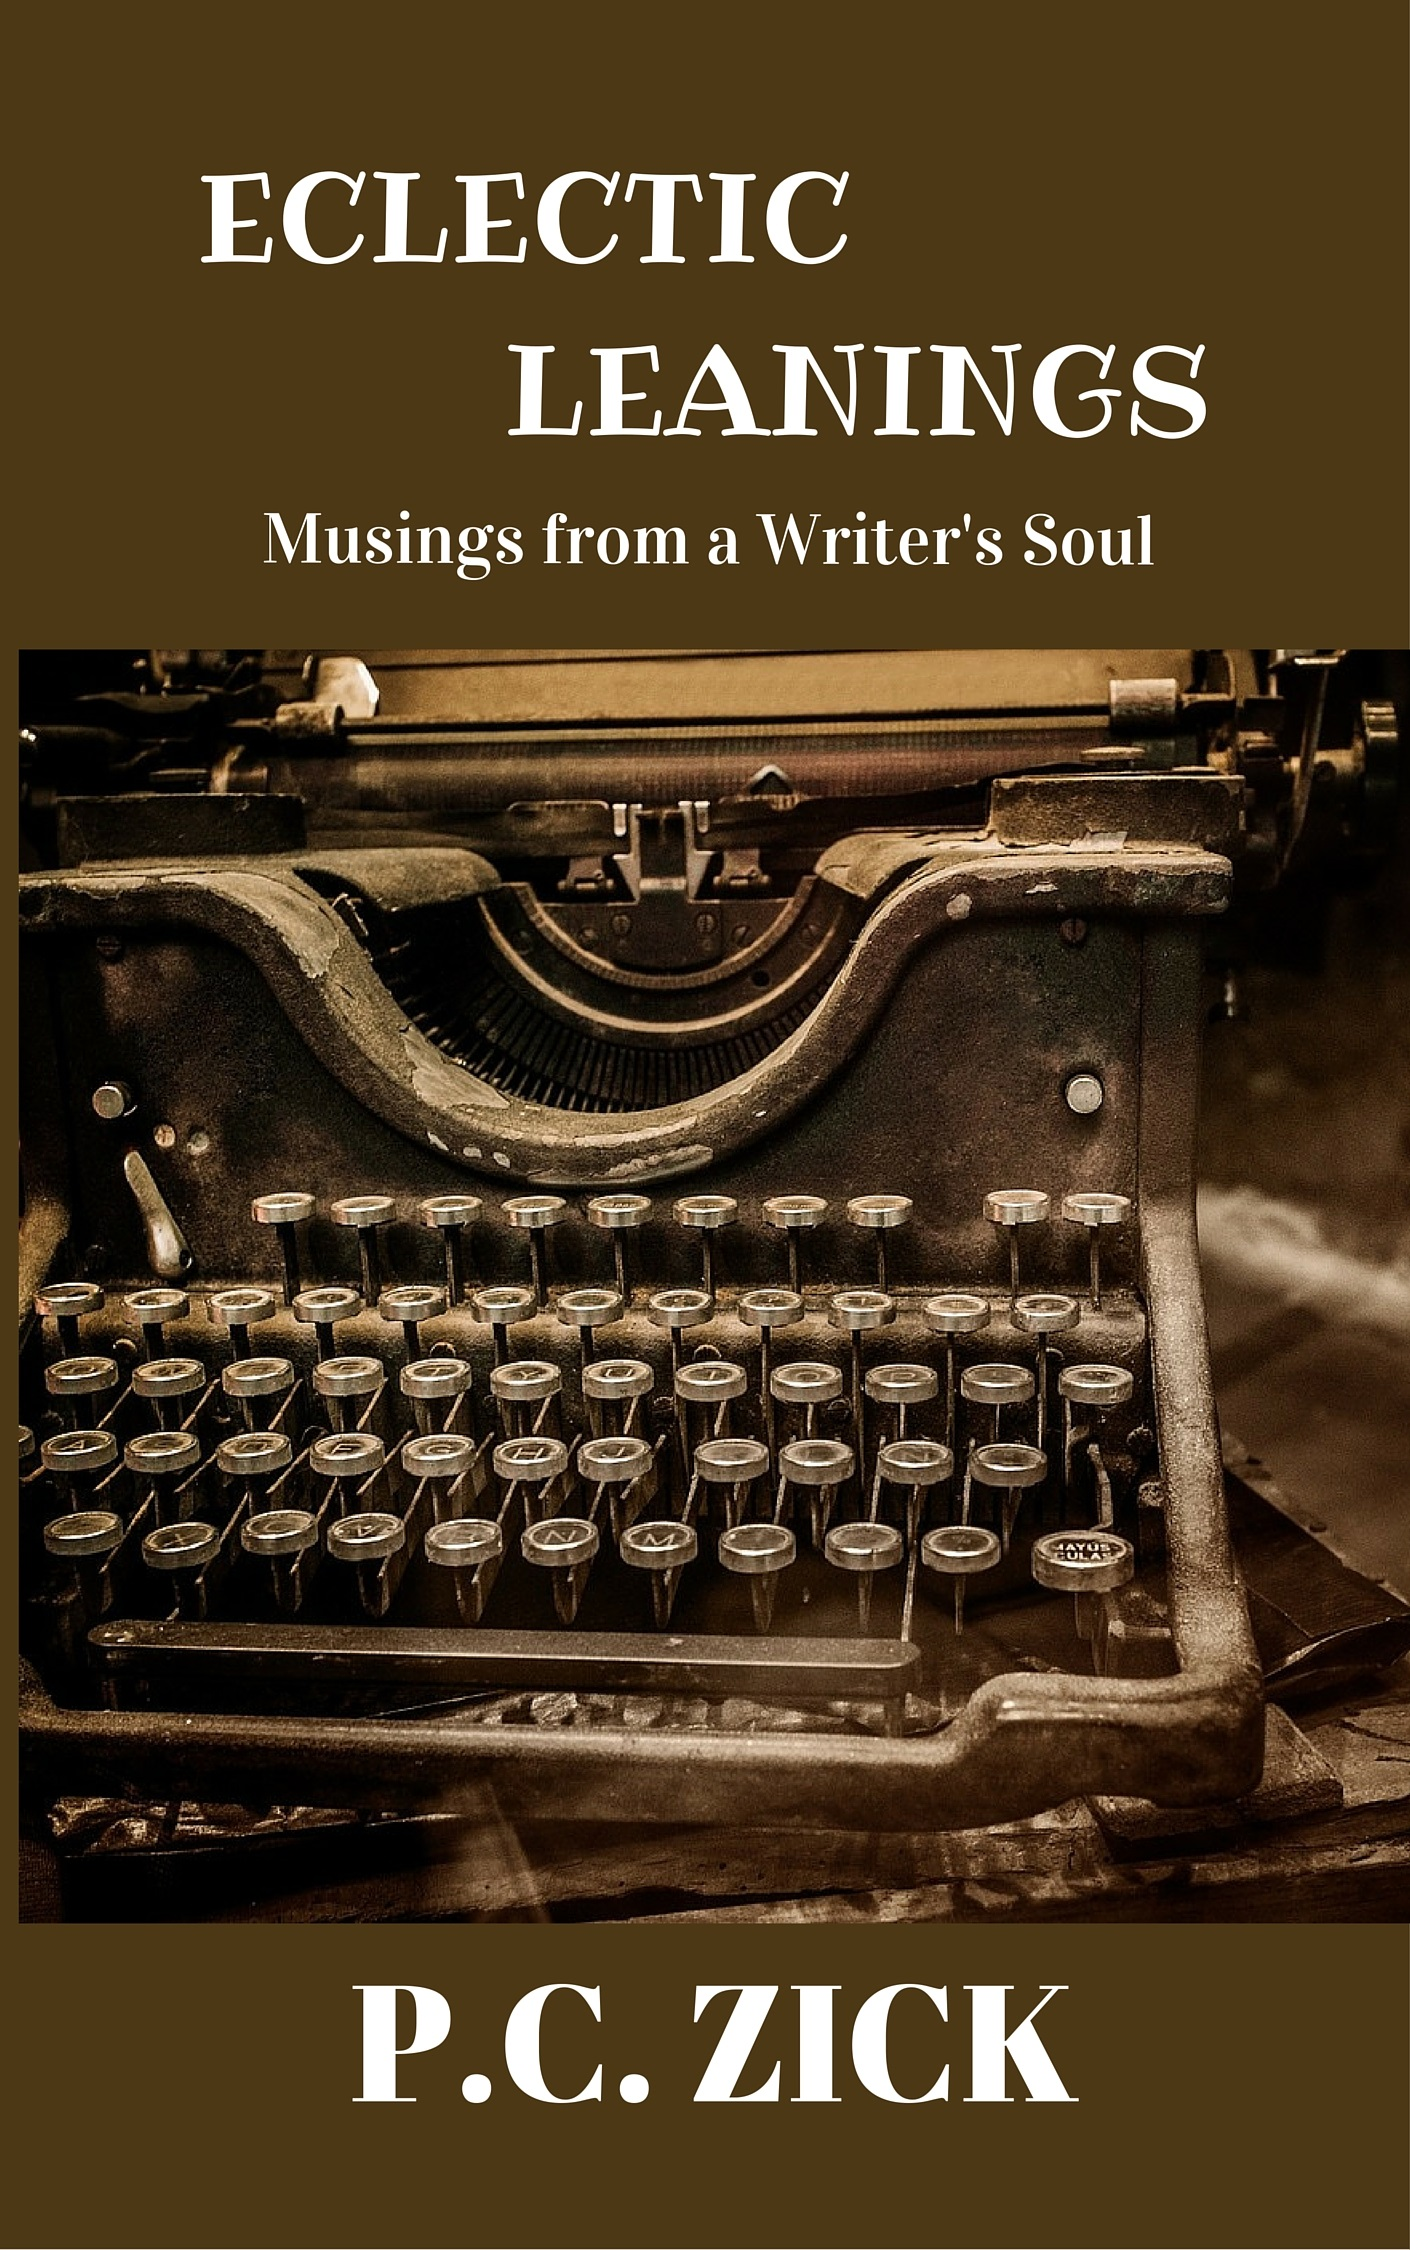 ECLECTIC MUSINGS FROM A WRITER'S LIFE